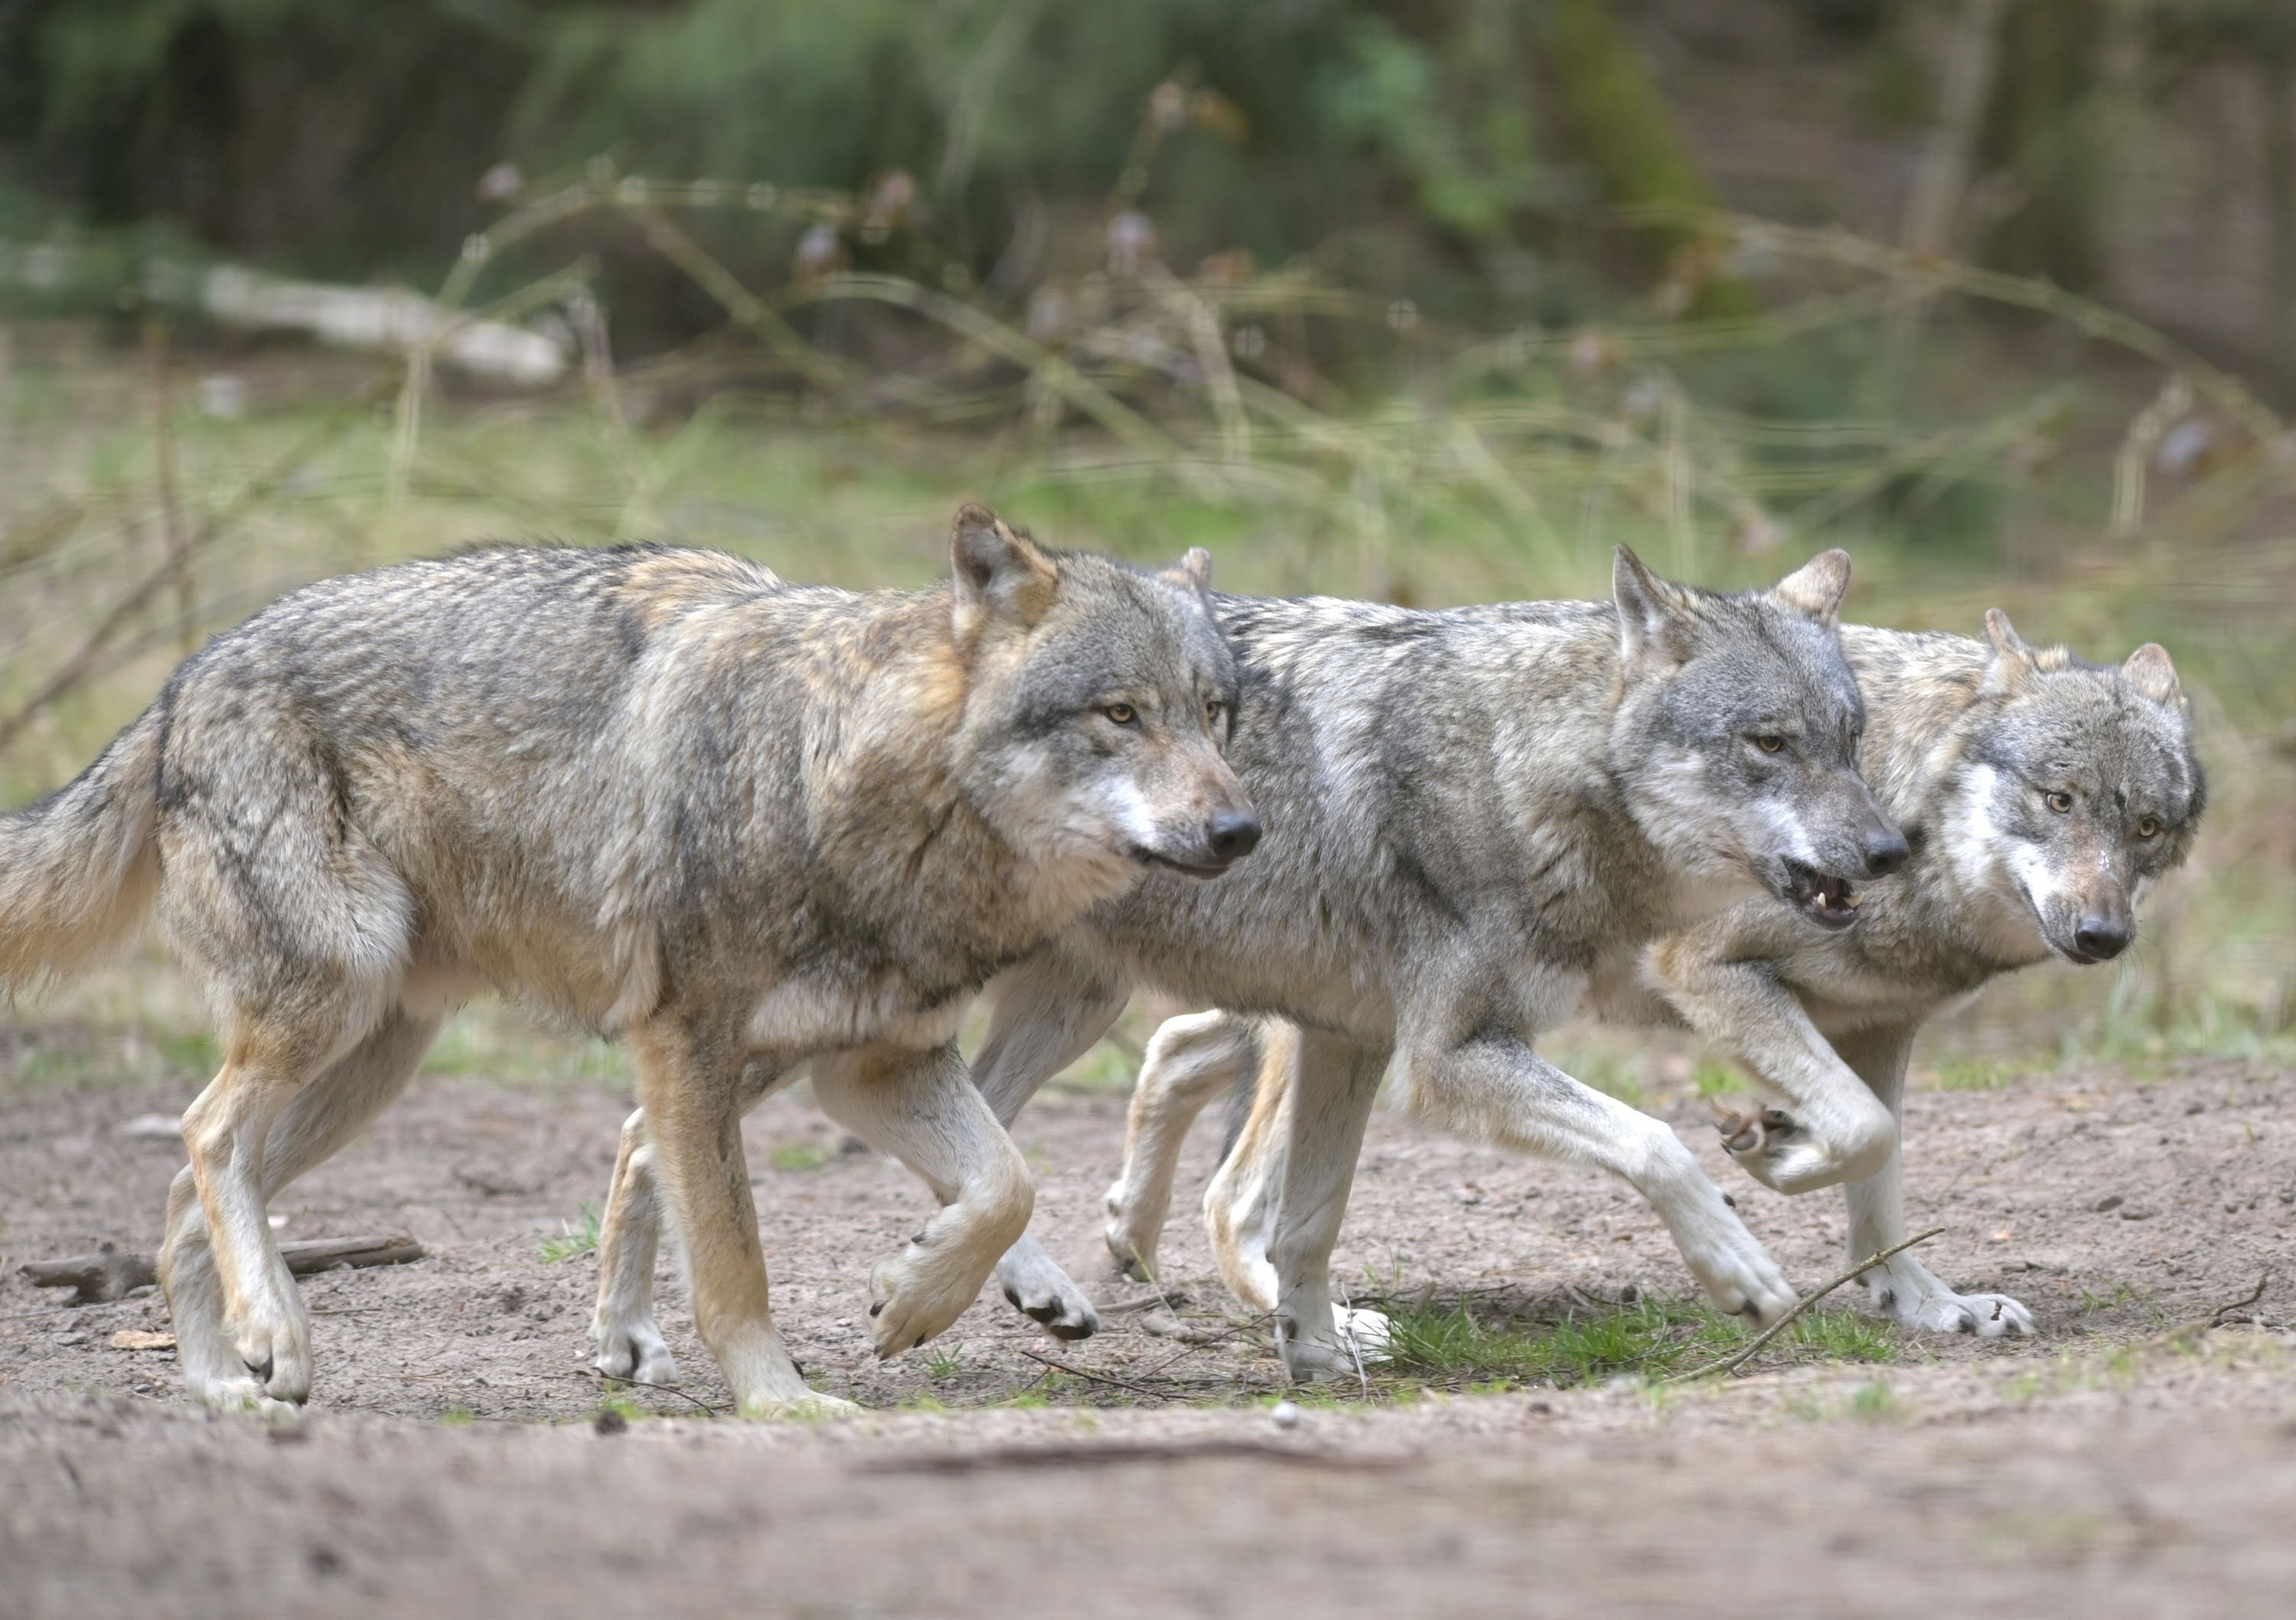 Wolves run through the enclosure in the Schorfheide Wildlife Park, Germany, April 21, 2021. (Getty Images)